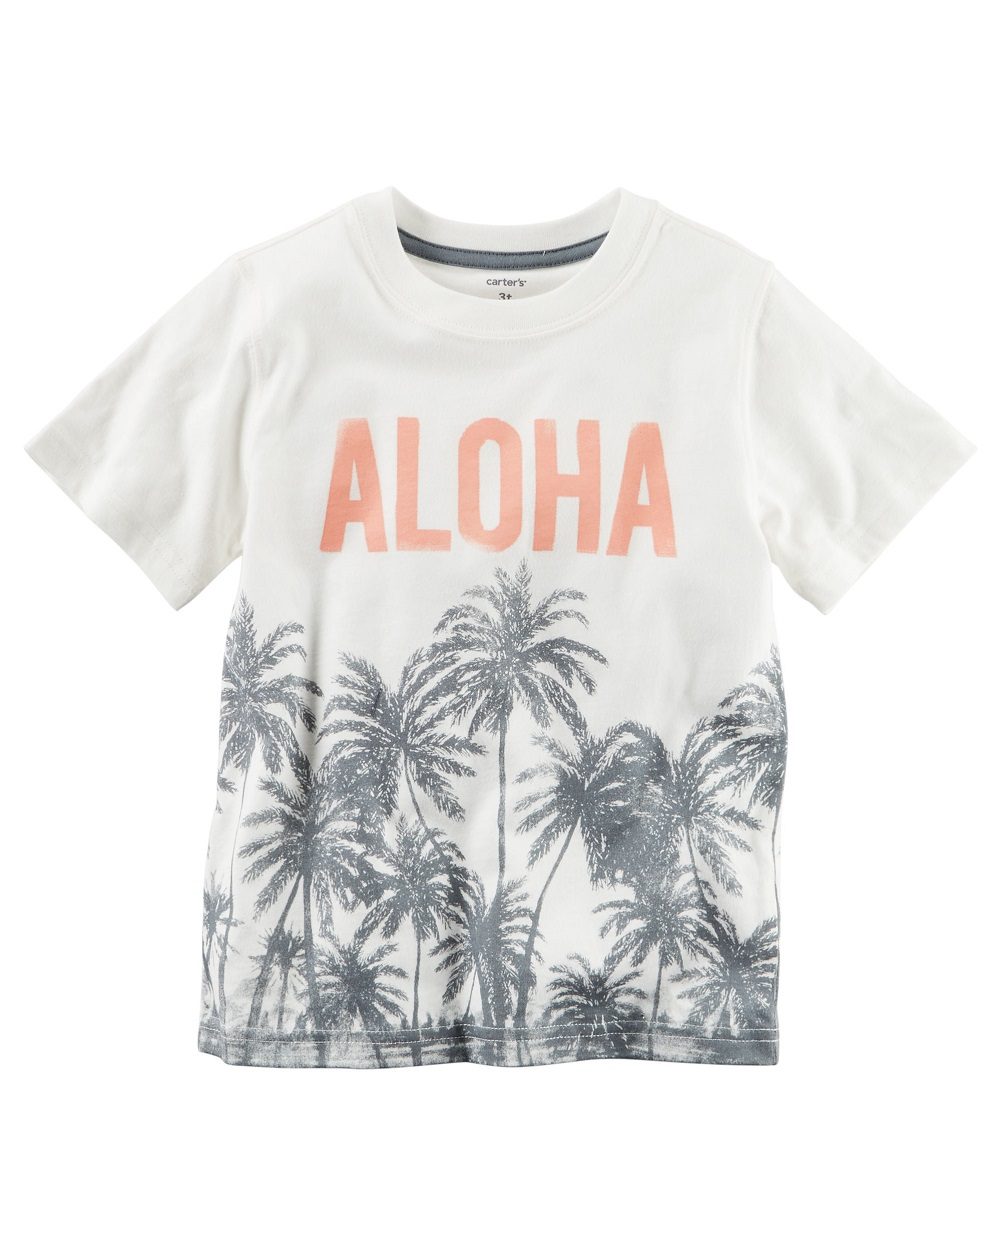 Carter's Baby Boys' Aloha Graphic Tee, 3 Months